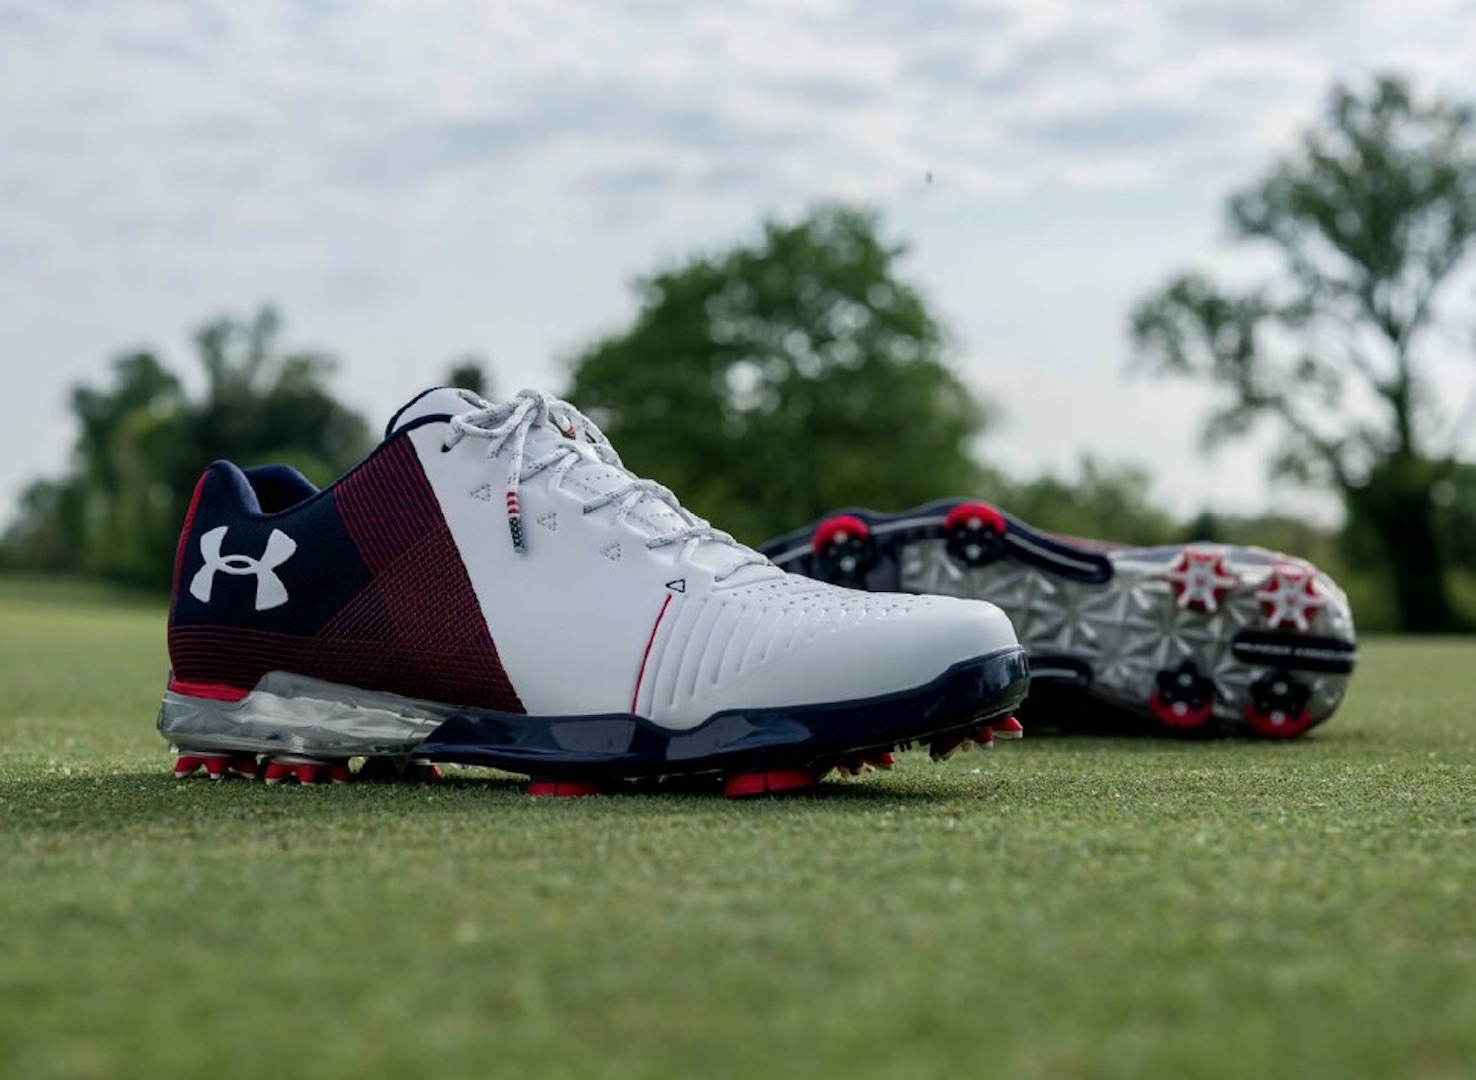 Spieth 2 in Red, White and Blue